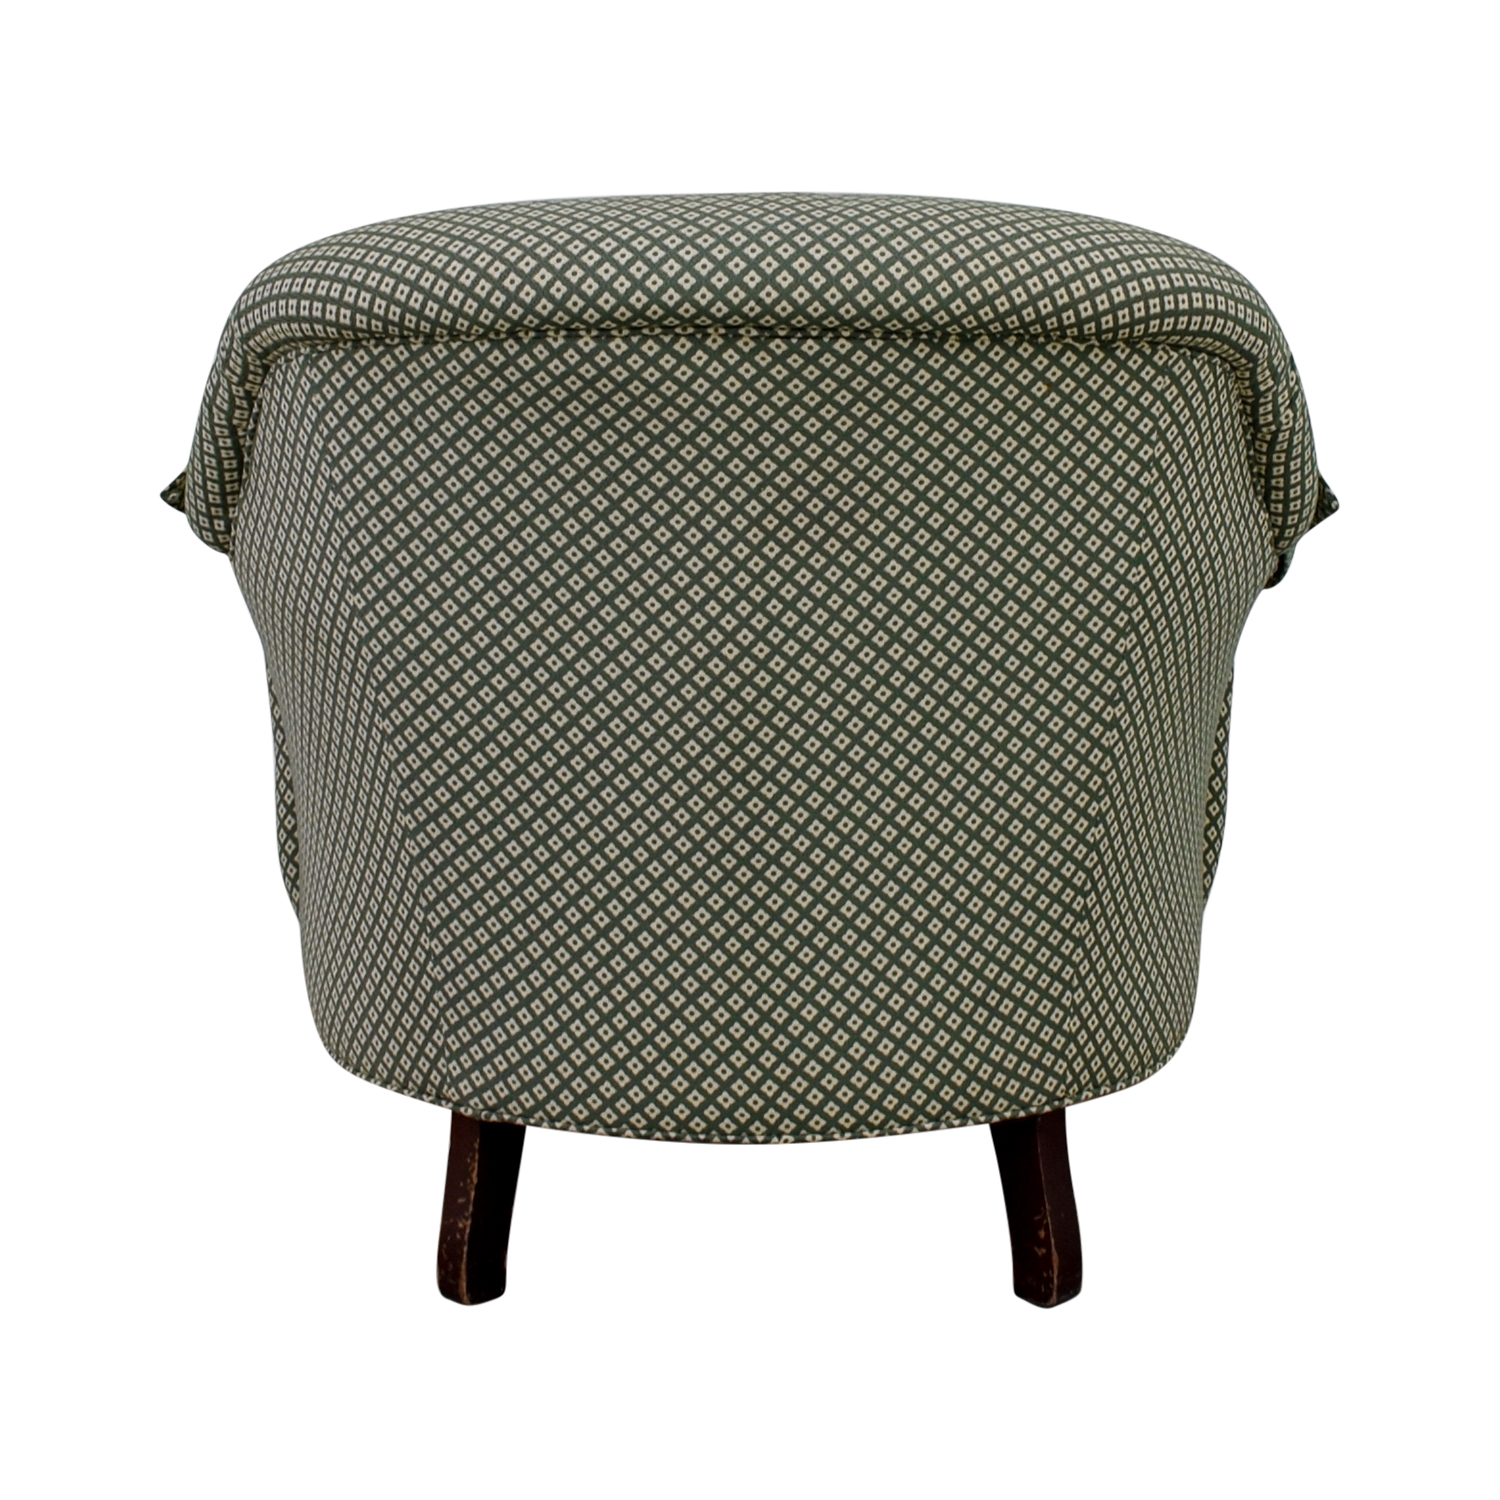 buy Sherrill Furniture Tufted Green & White Armchair Sherrill Furniture